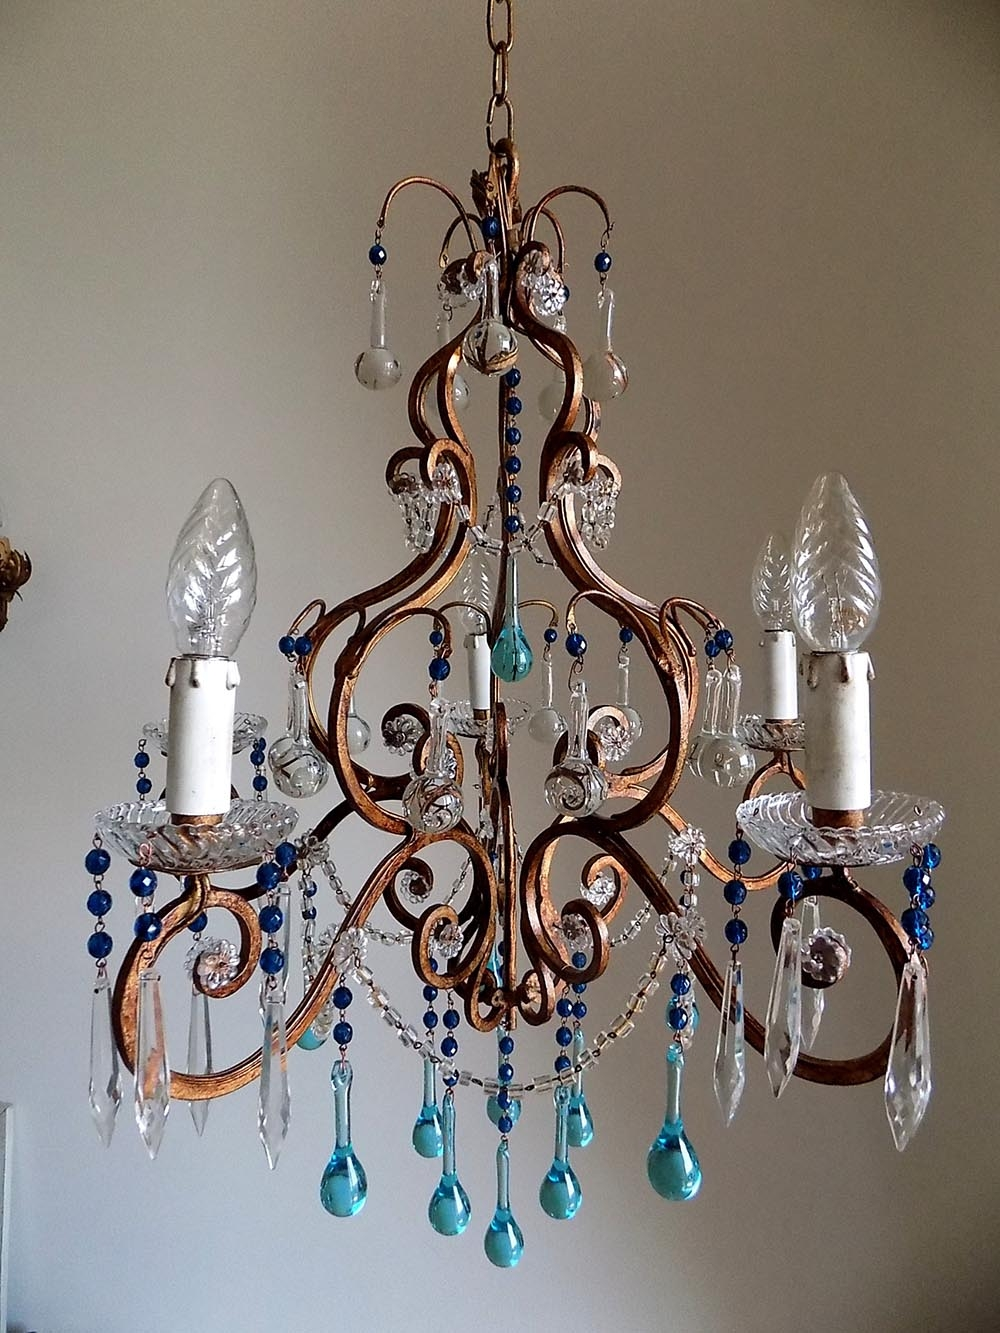 Chandelier Amusing Wrought Iron Crystal Chandelier Astounding Regarding Turquoise Chandelier Crystals (Image 10 of 25)